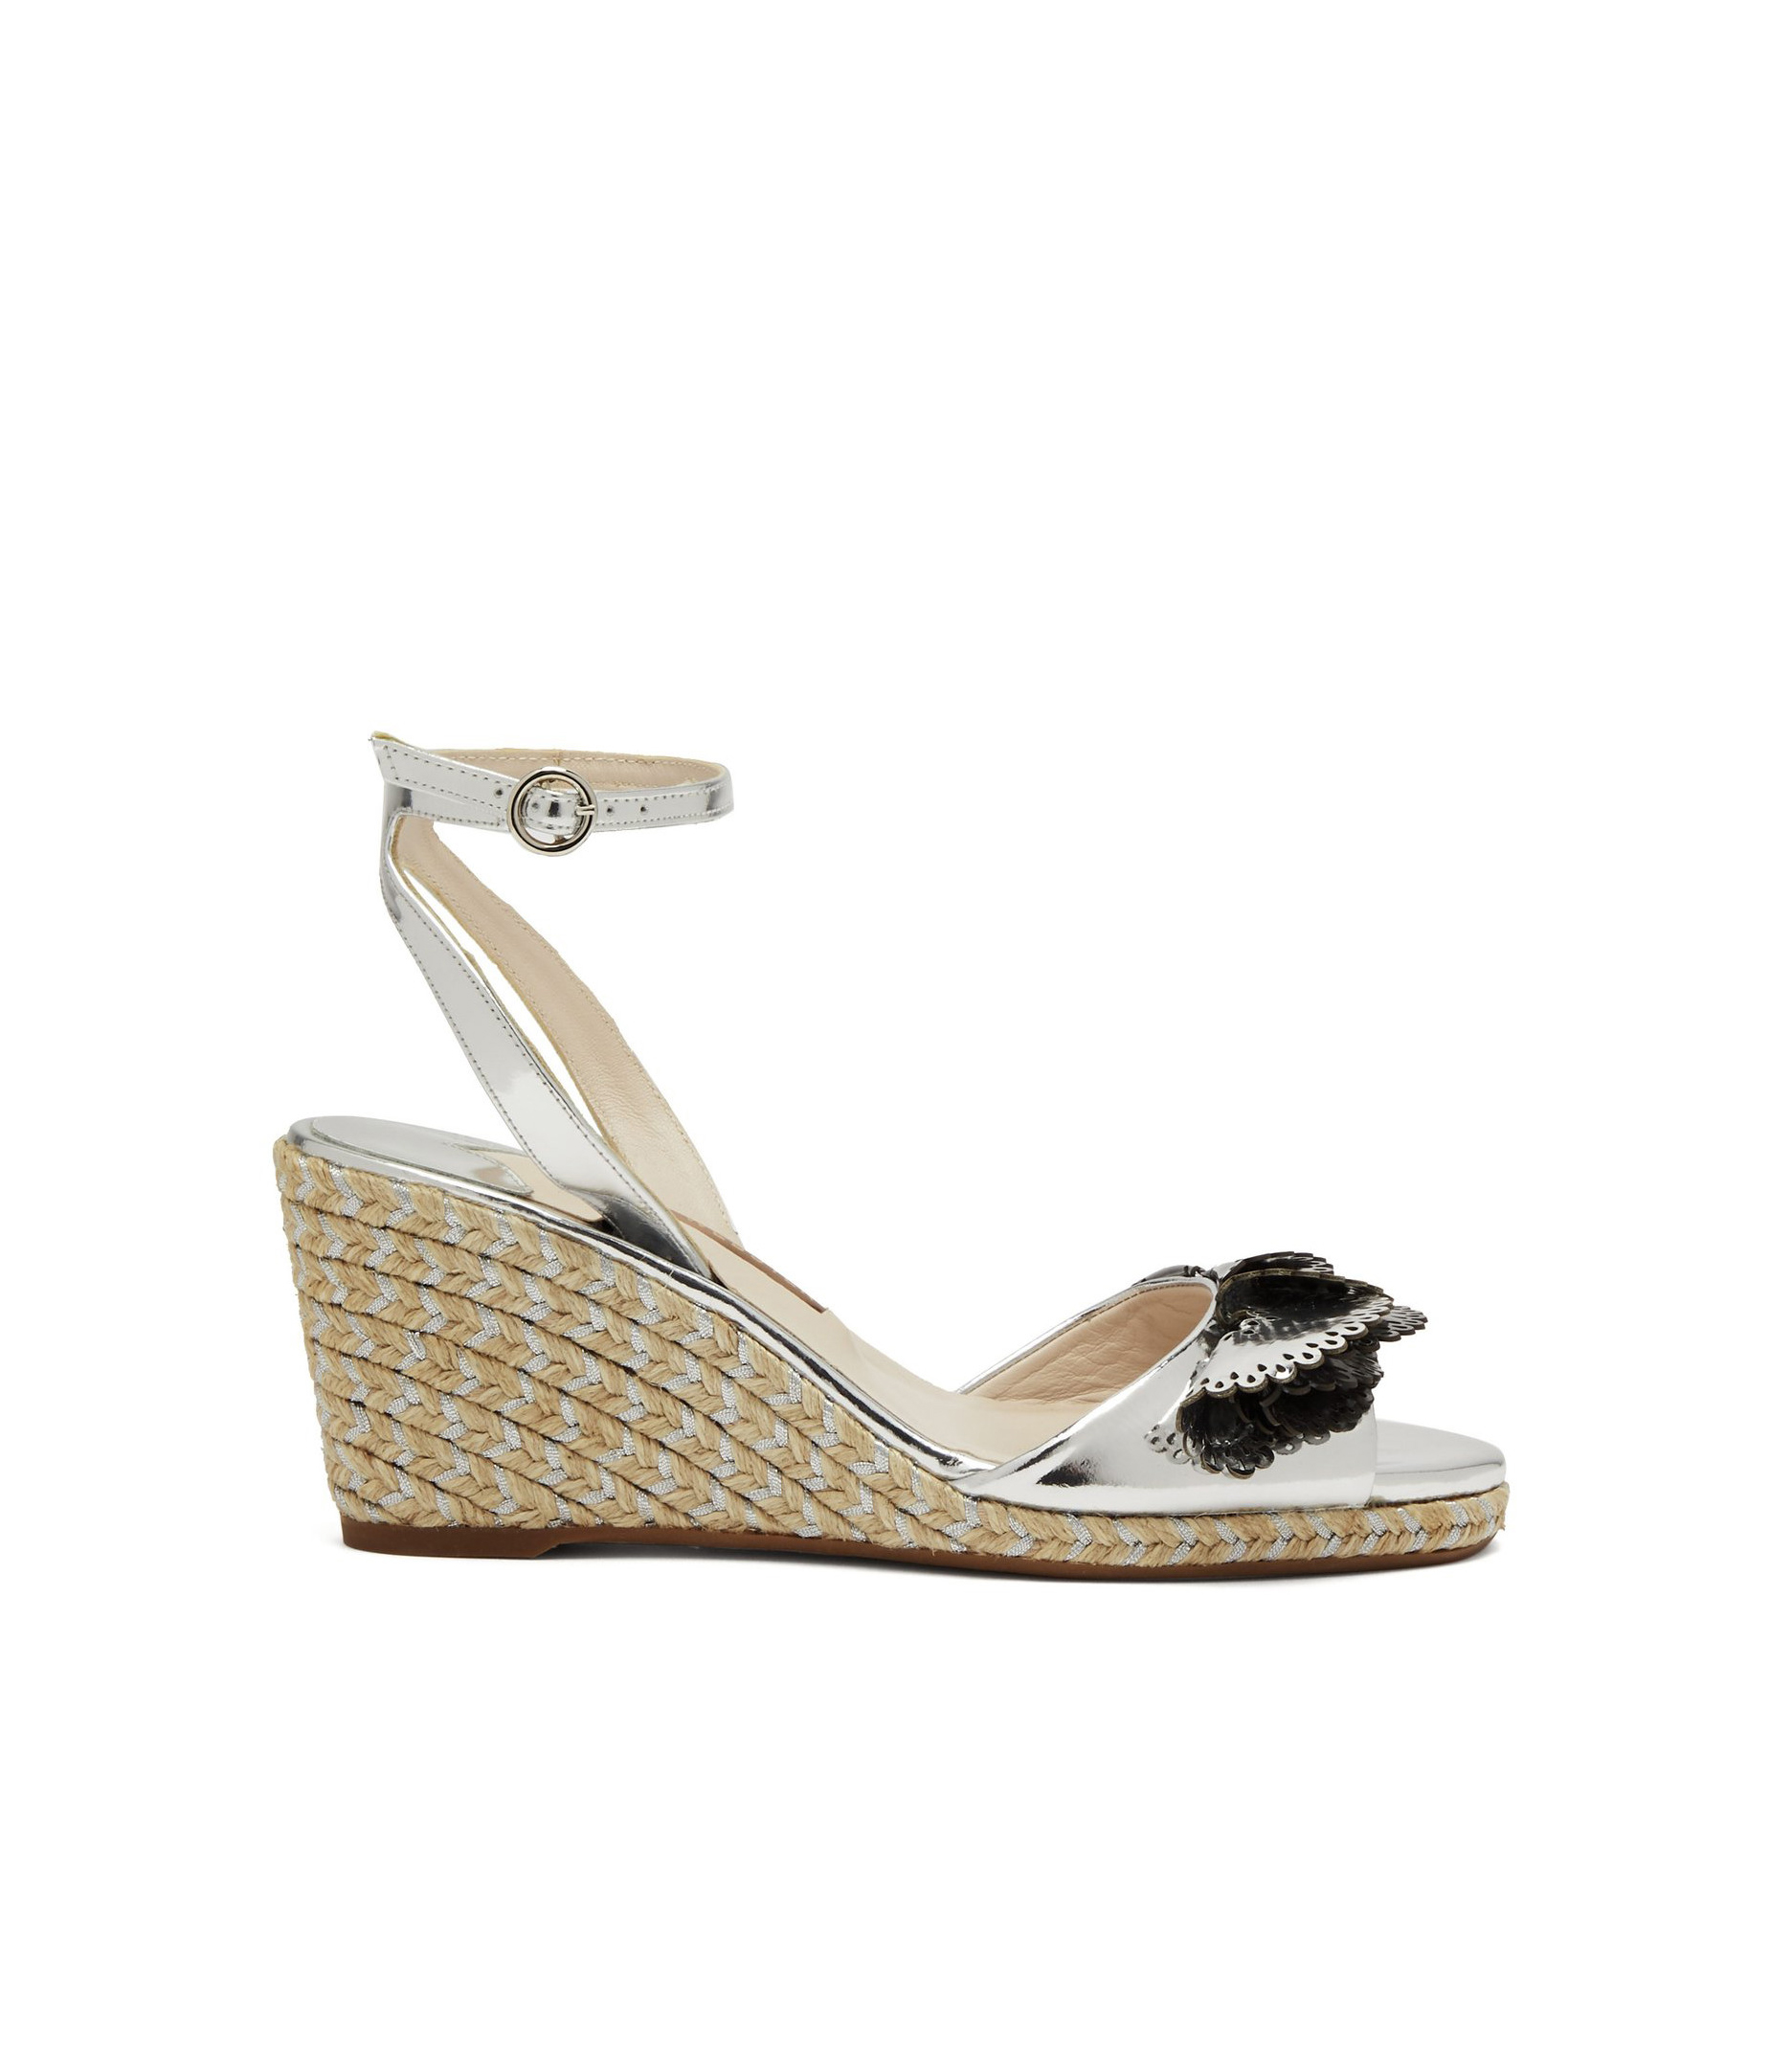 wedding wedges with black and silver embellished front